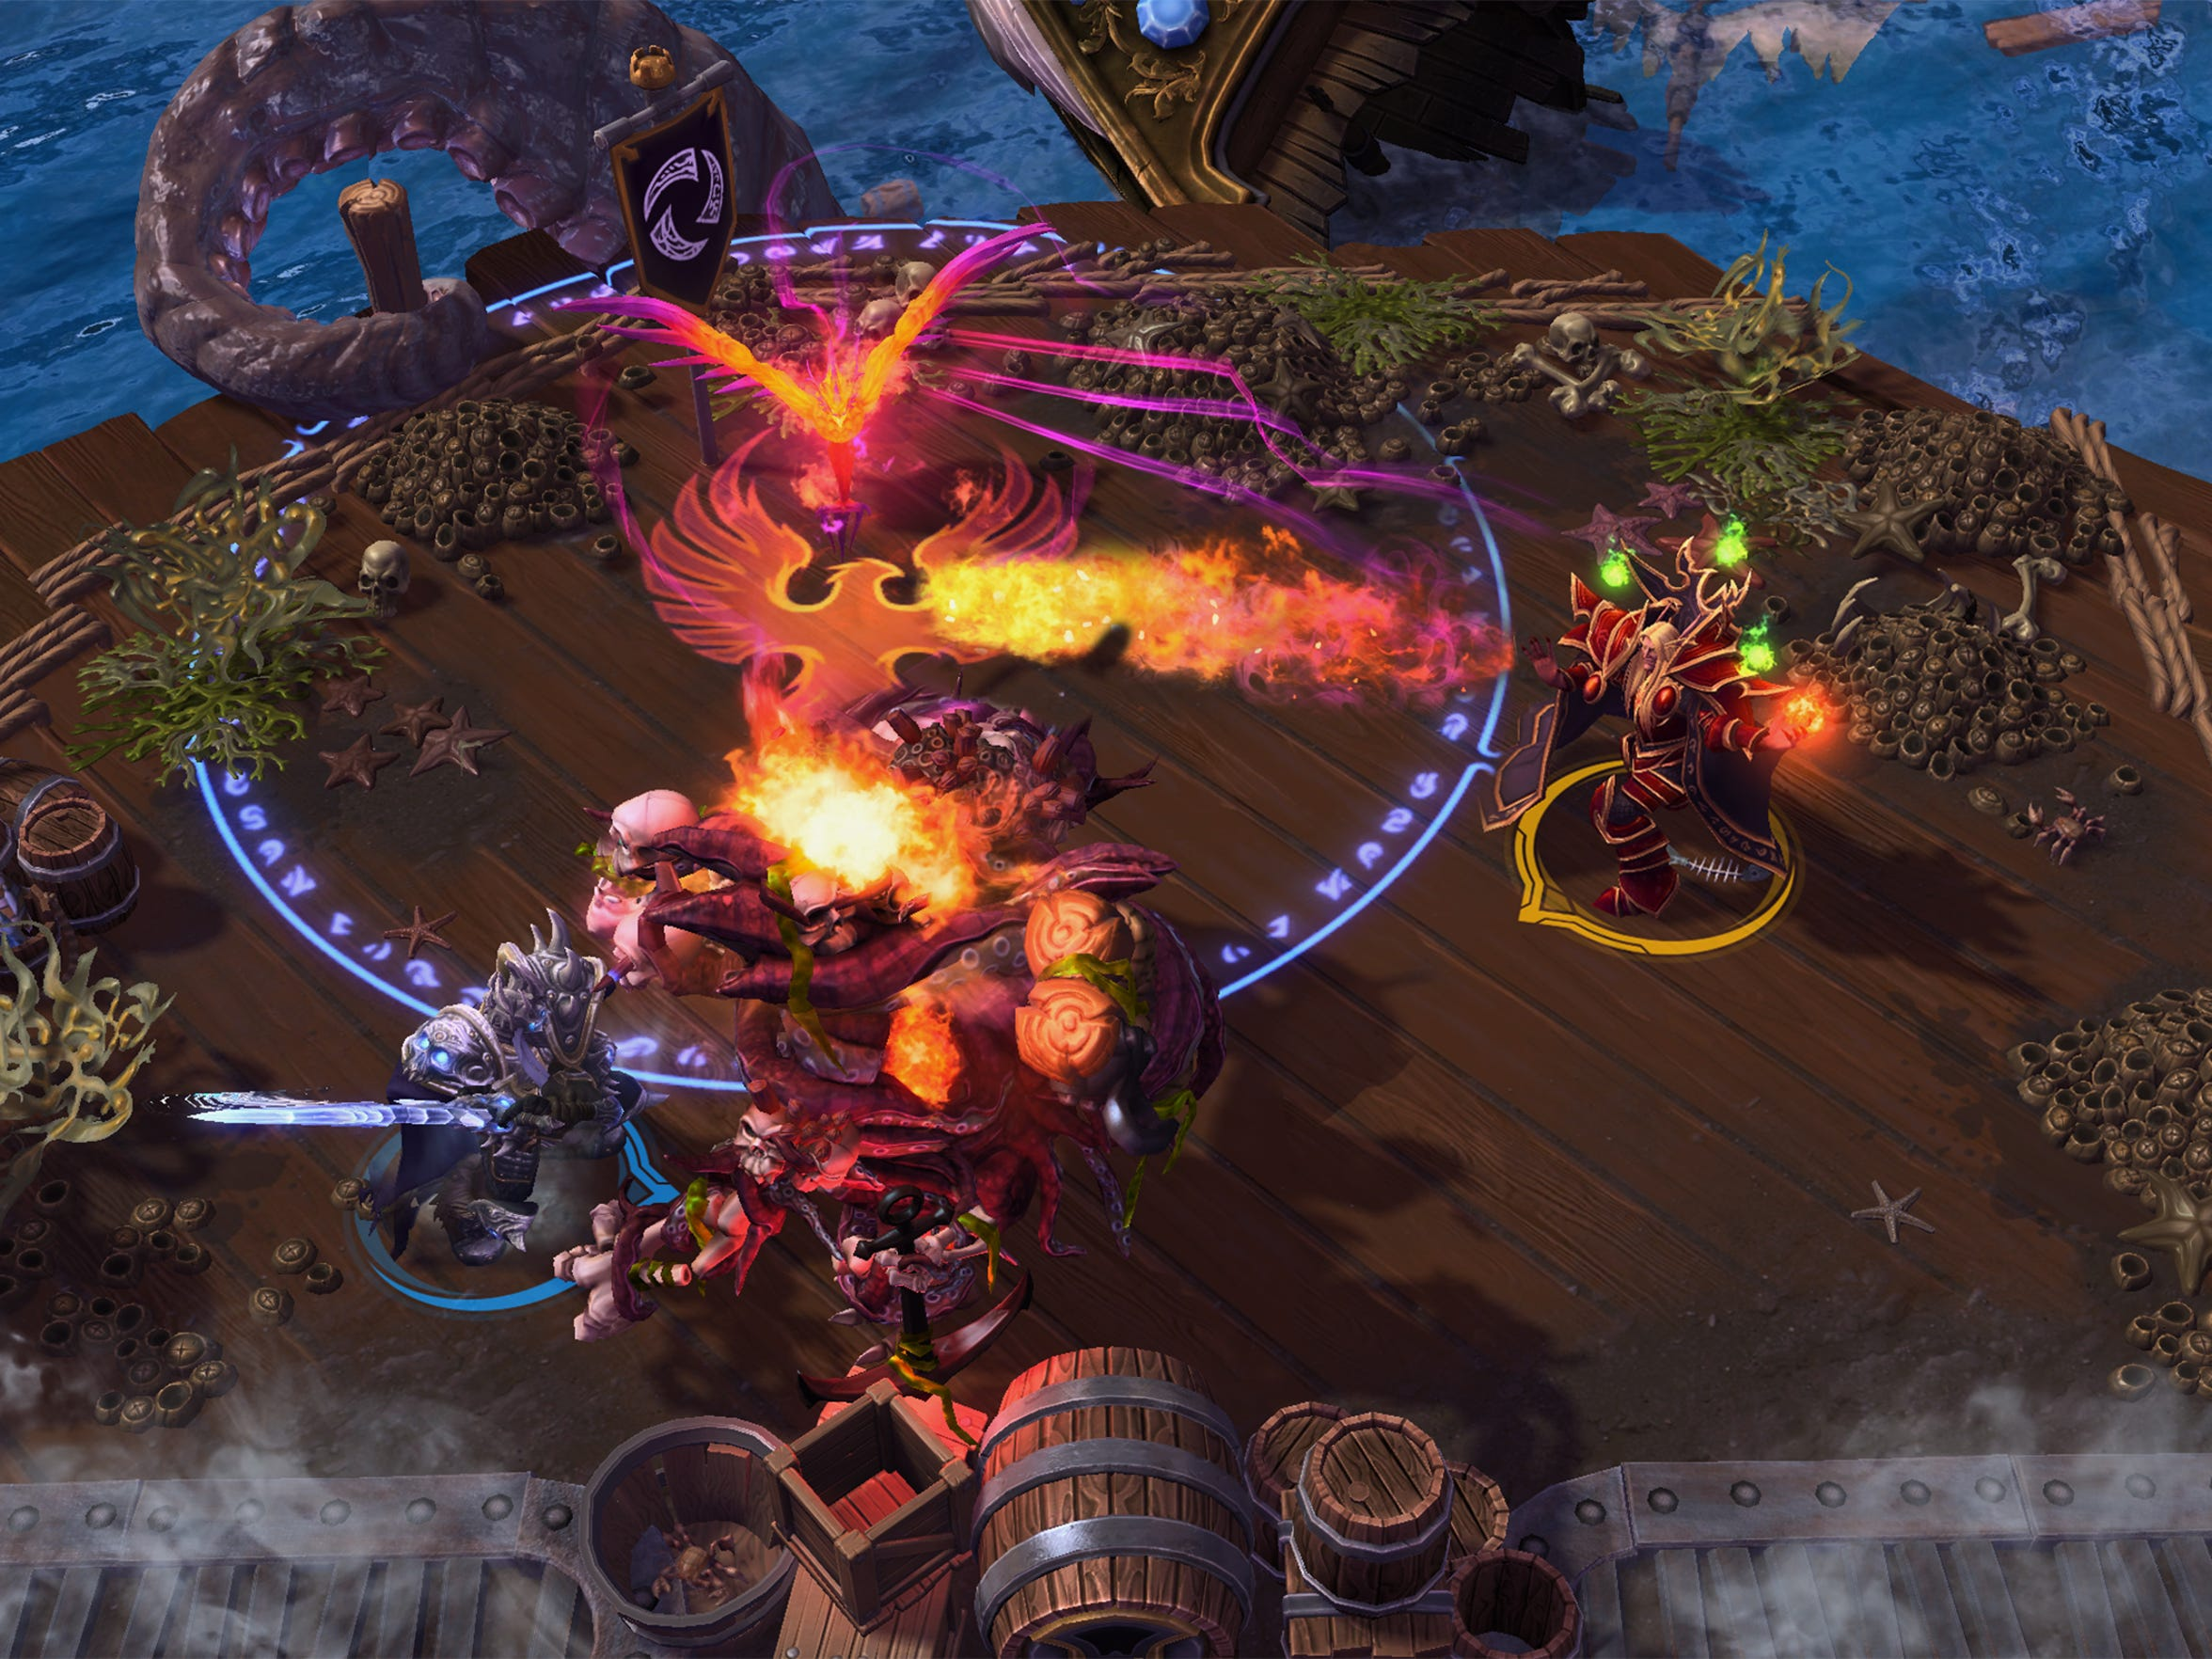 """""""Heroes of the Storm"""" serves up a streamlined MOBA experience that puts greater emphasis on team fights, map objectives and speedier play."""